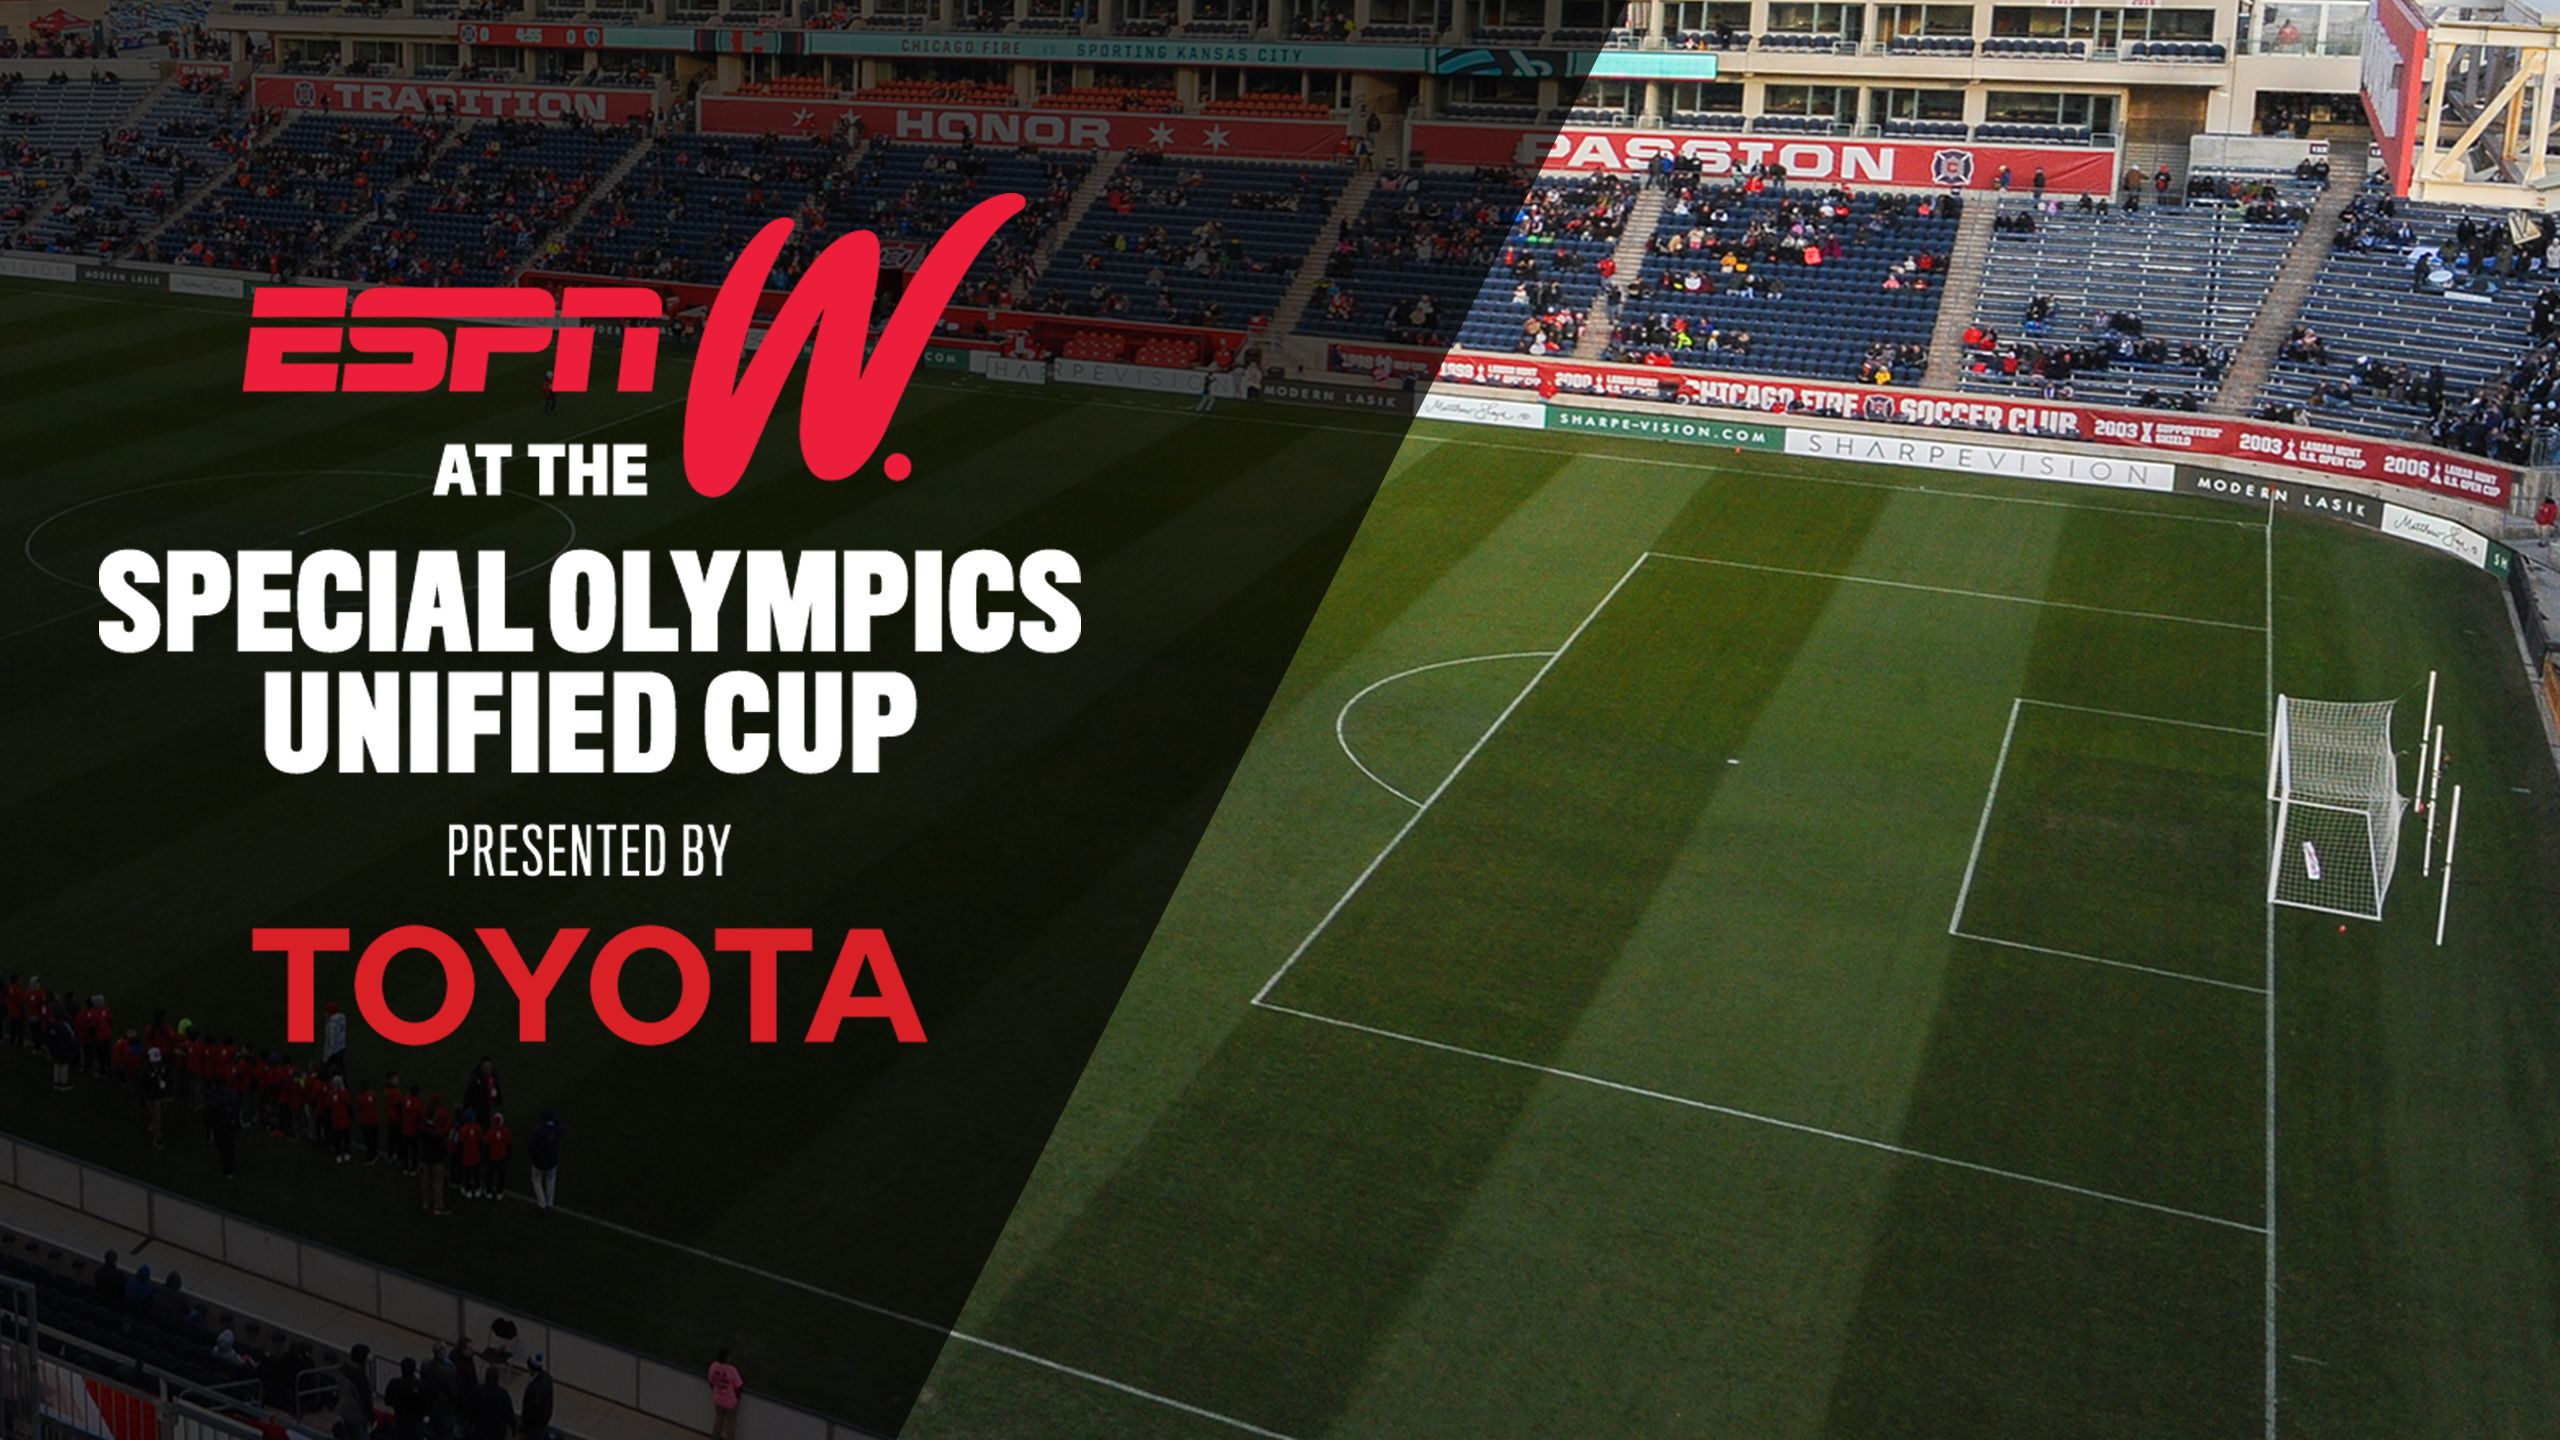 espnW at the Special Olympics Unified Cup presented by Toyota